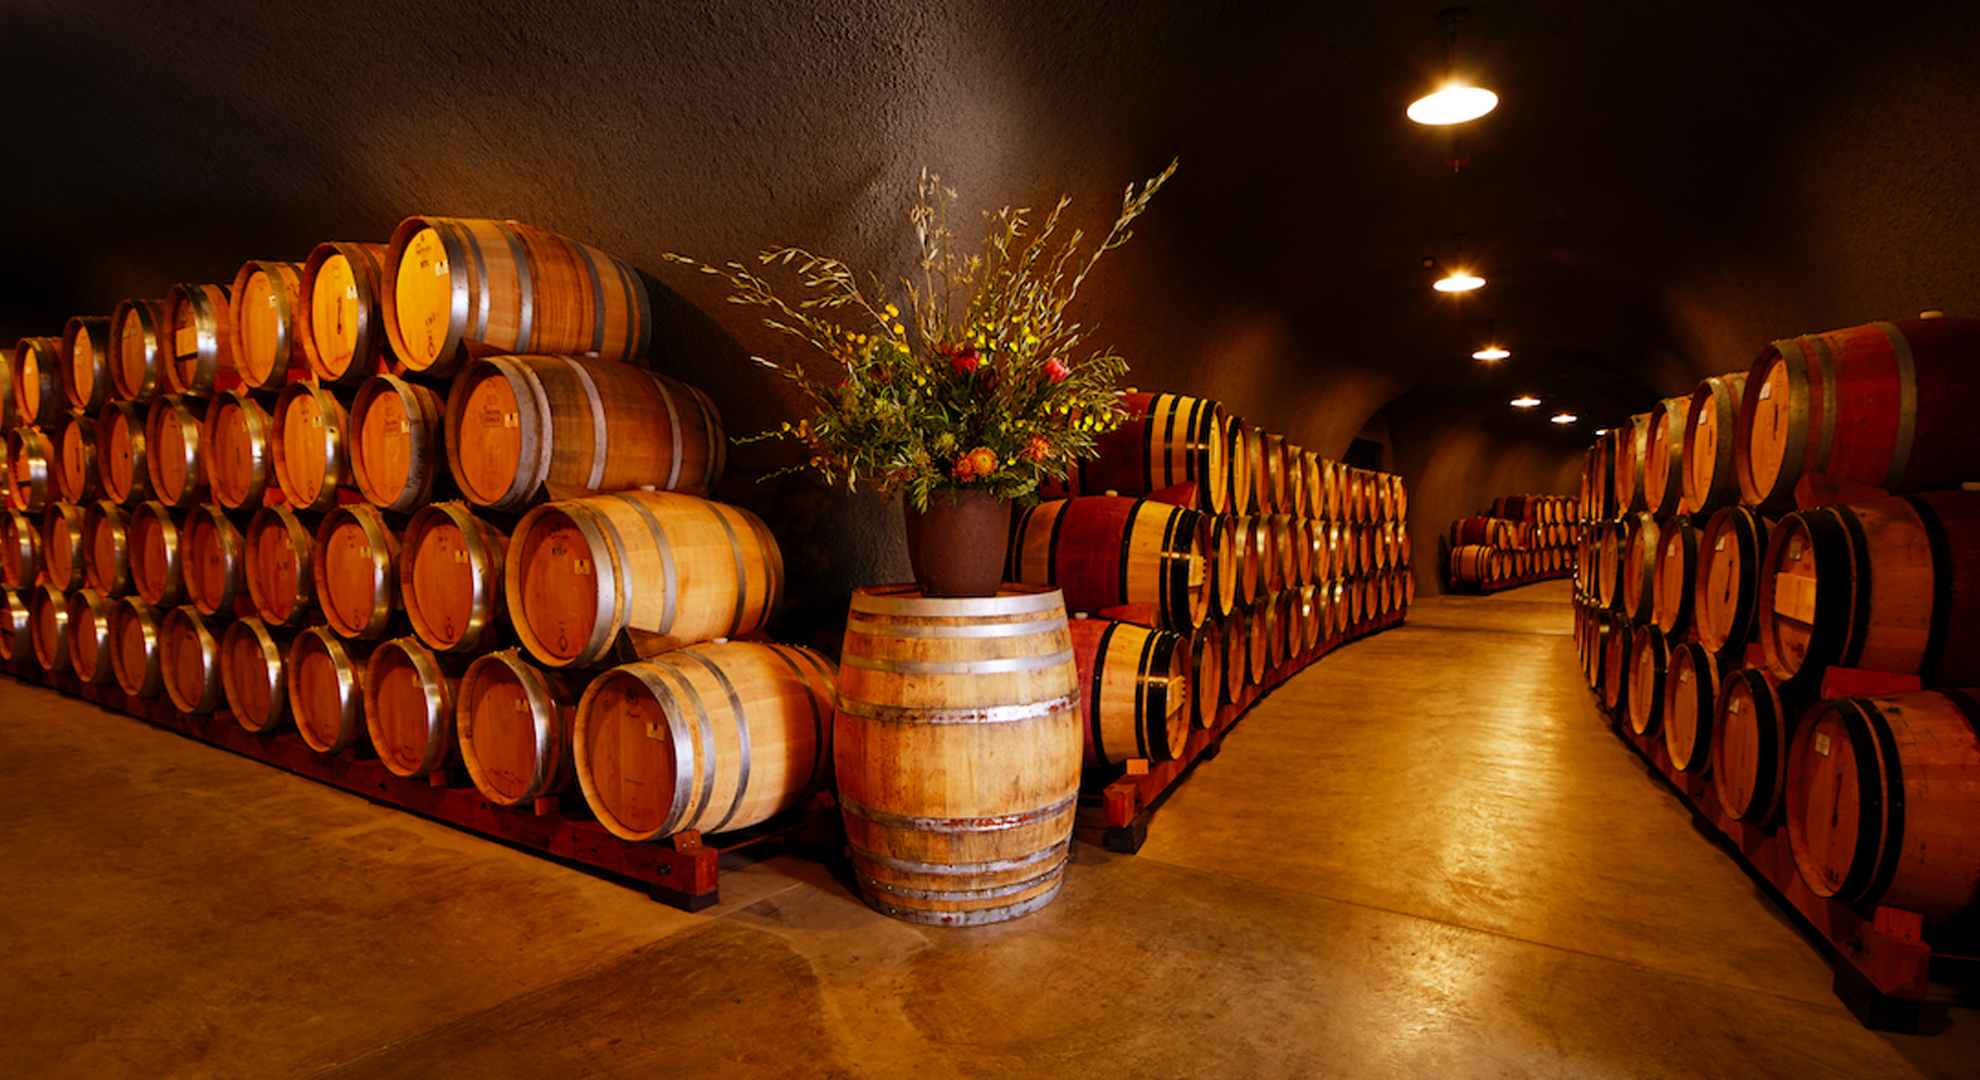 Hallway featuring rows of wine barrels.